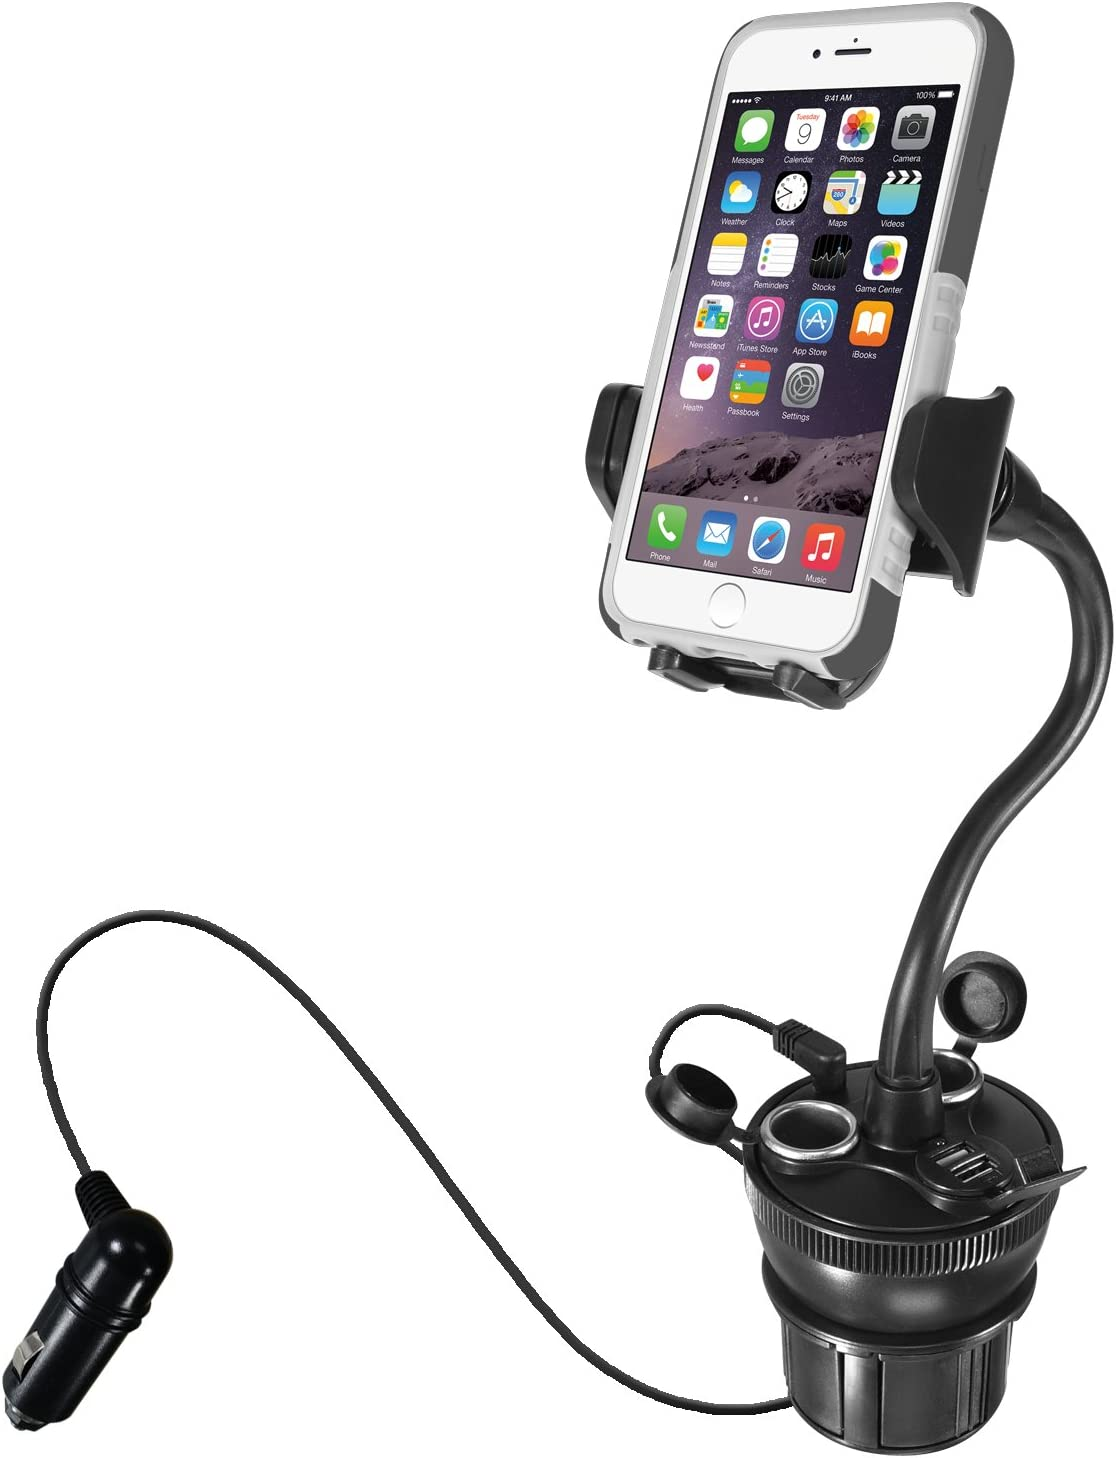 """Macally Car Cup Holder Phone Mount with Two High Powered USB Charging Ports 4.2A 21W, 2 Cigarette Lighter Sockets, & 8"""" Long Neck for iPhone XS XS MAX XR X 8 8+ 7 Plus, Samsung Galaxy, etc (MCUPPOWER)"""